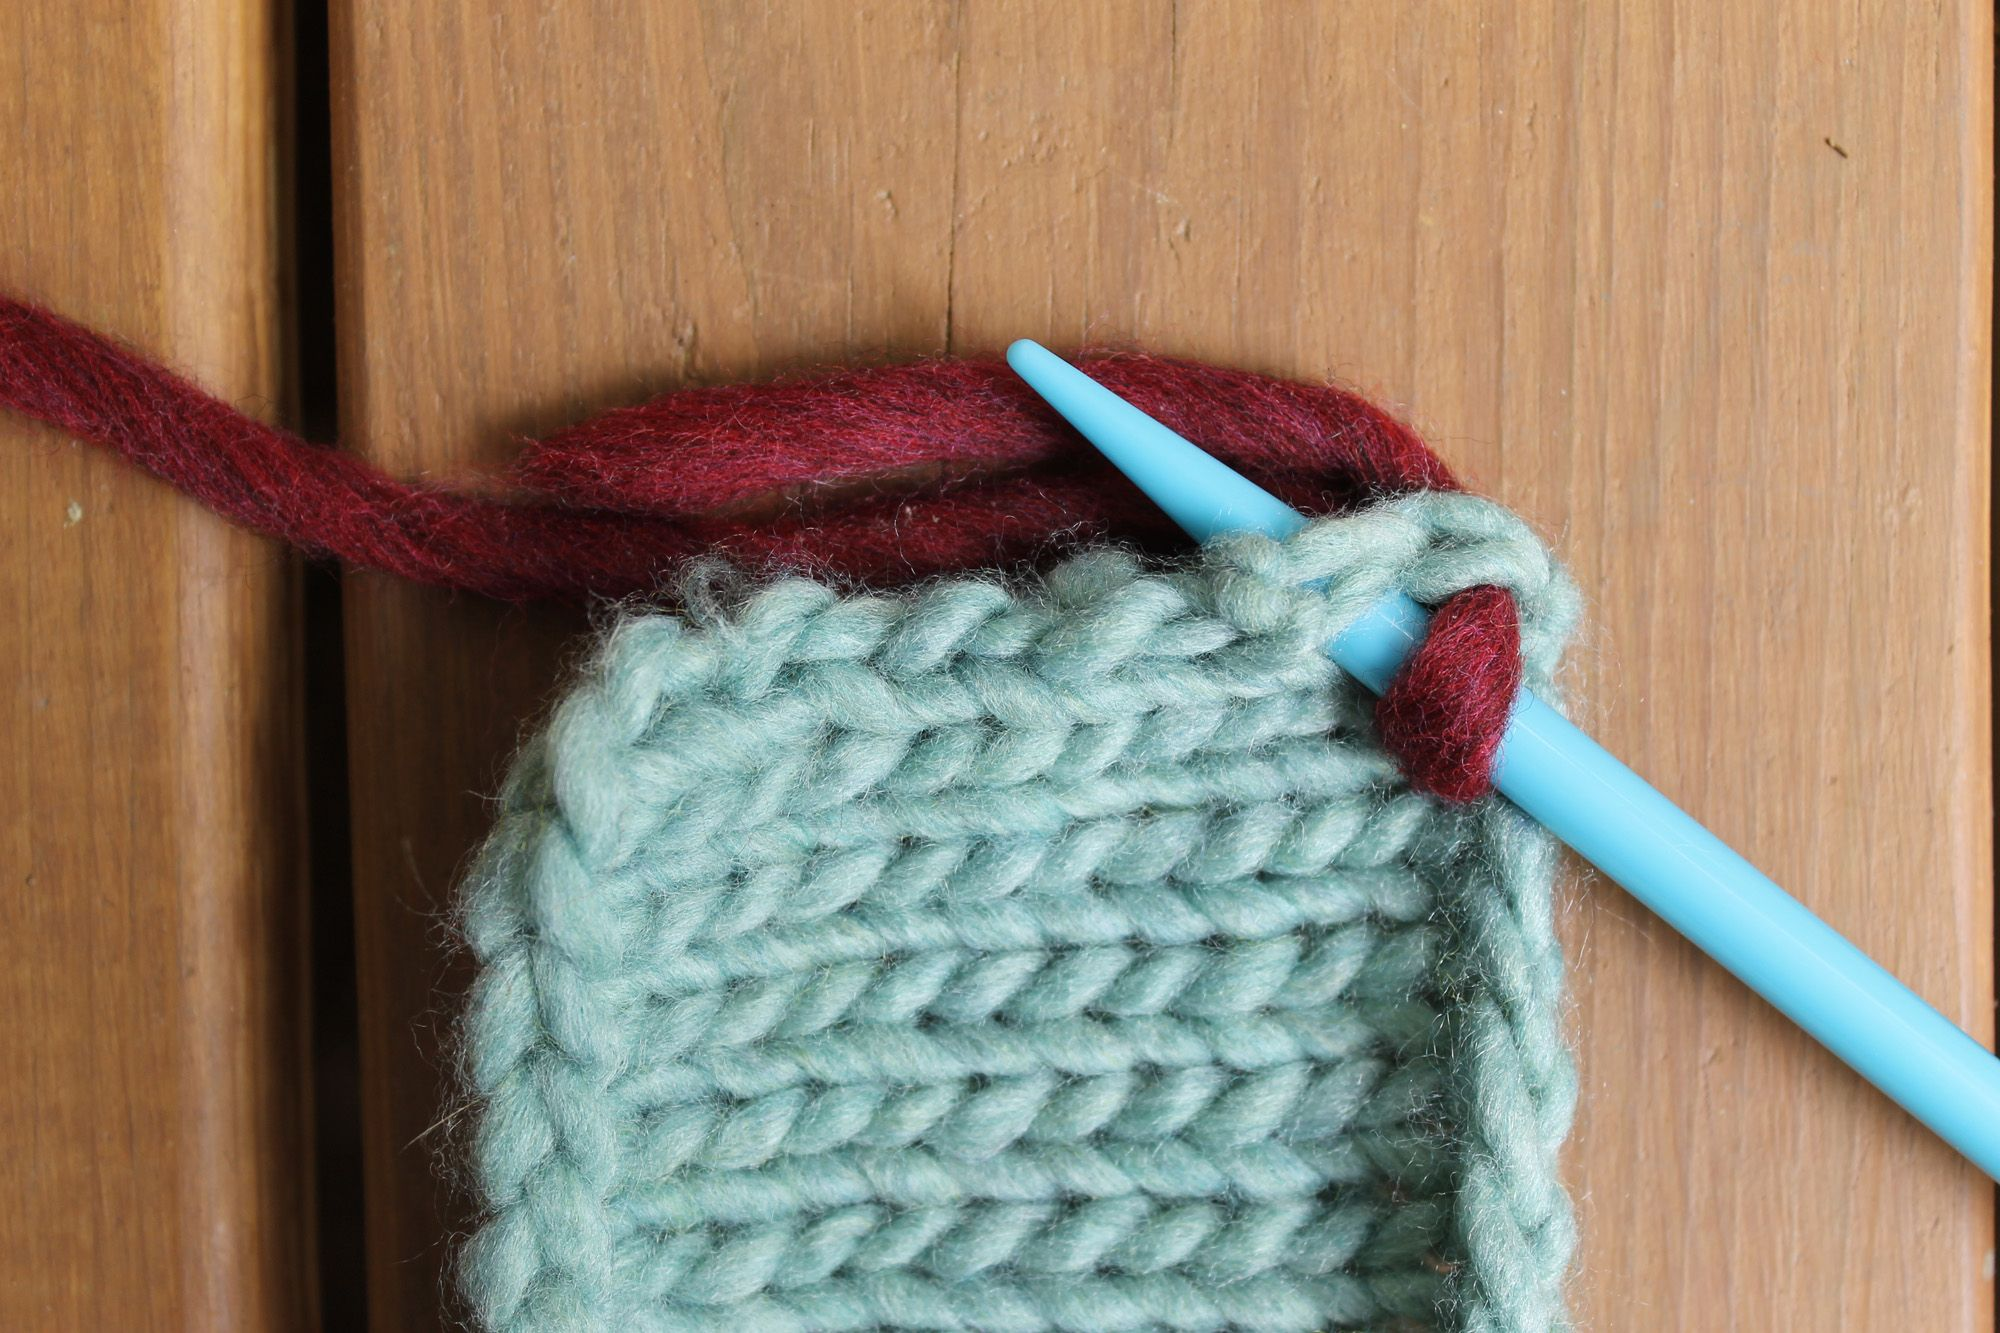 If You Can Wrap Yarn Around Your Knitting Needle, You Can